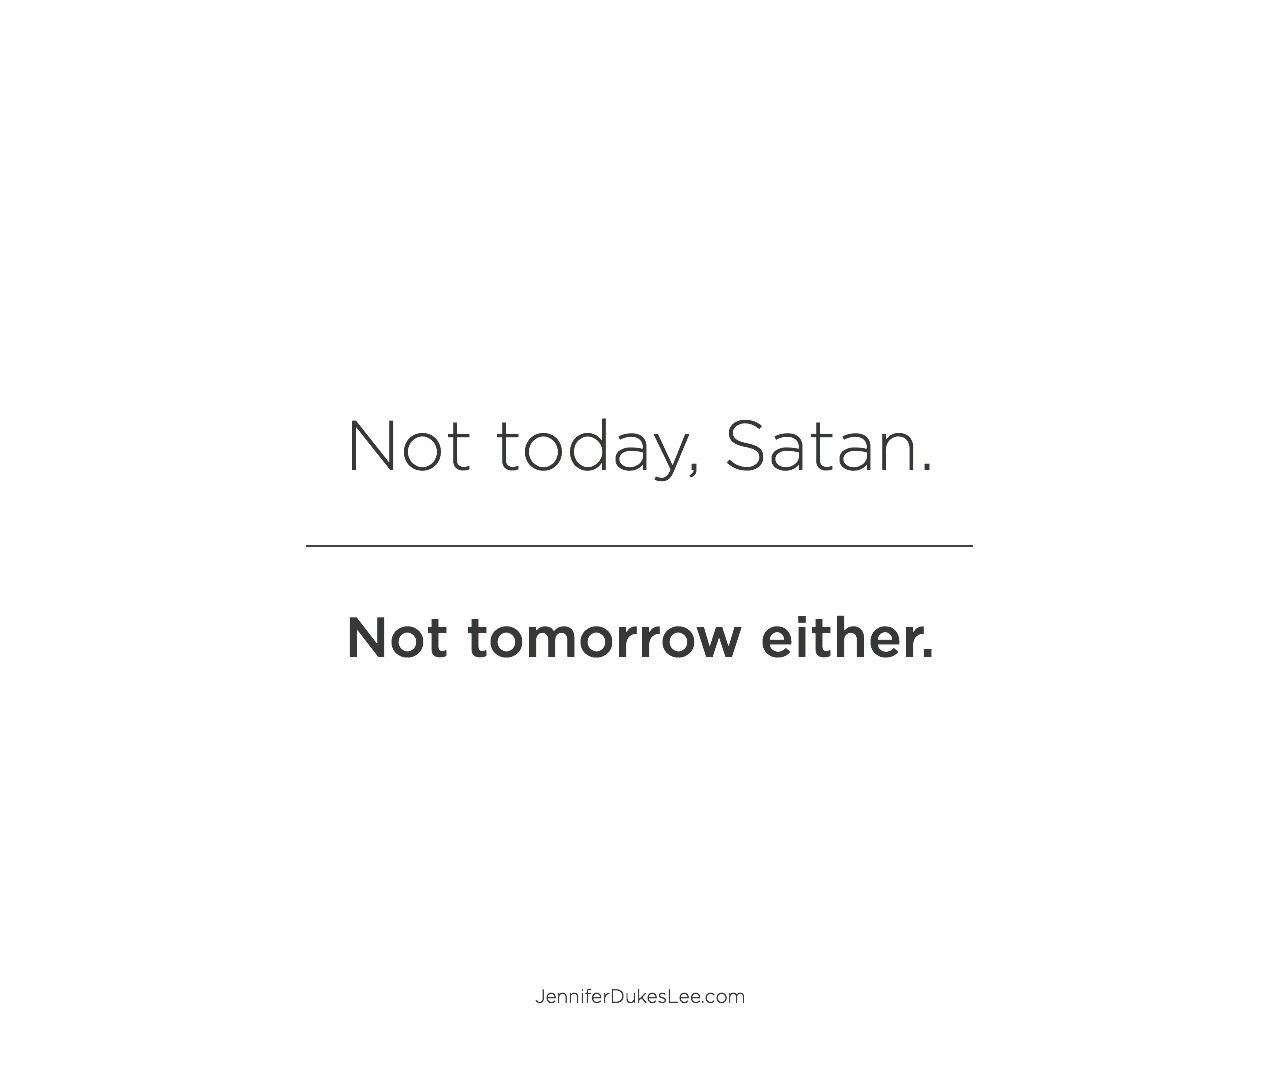 Not today, Satan. And not tomorrow either.  Today quotes, Satan